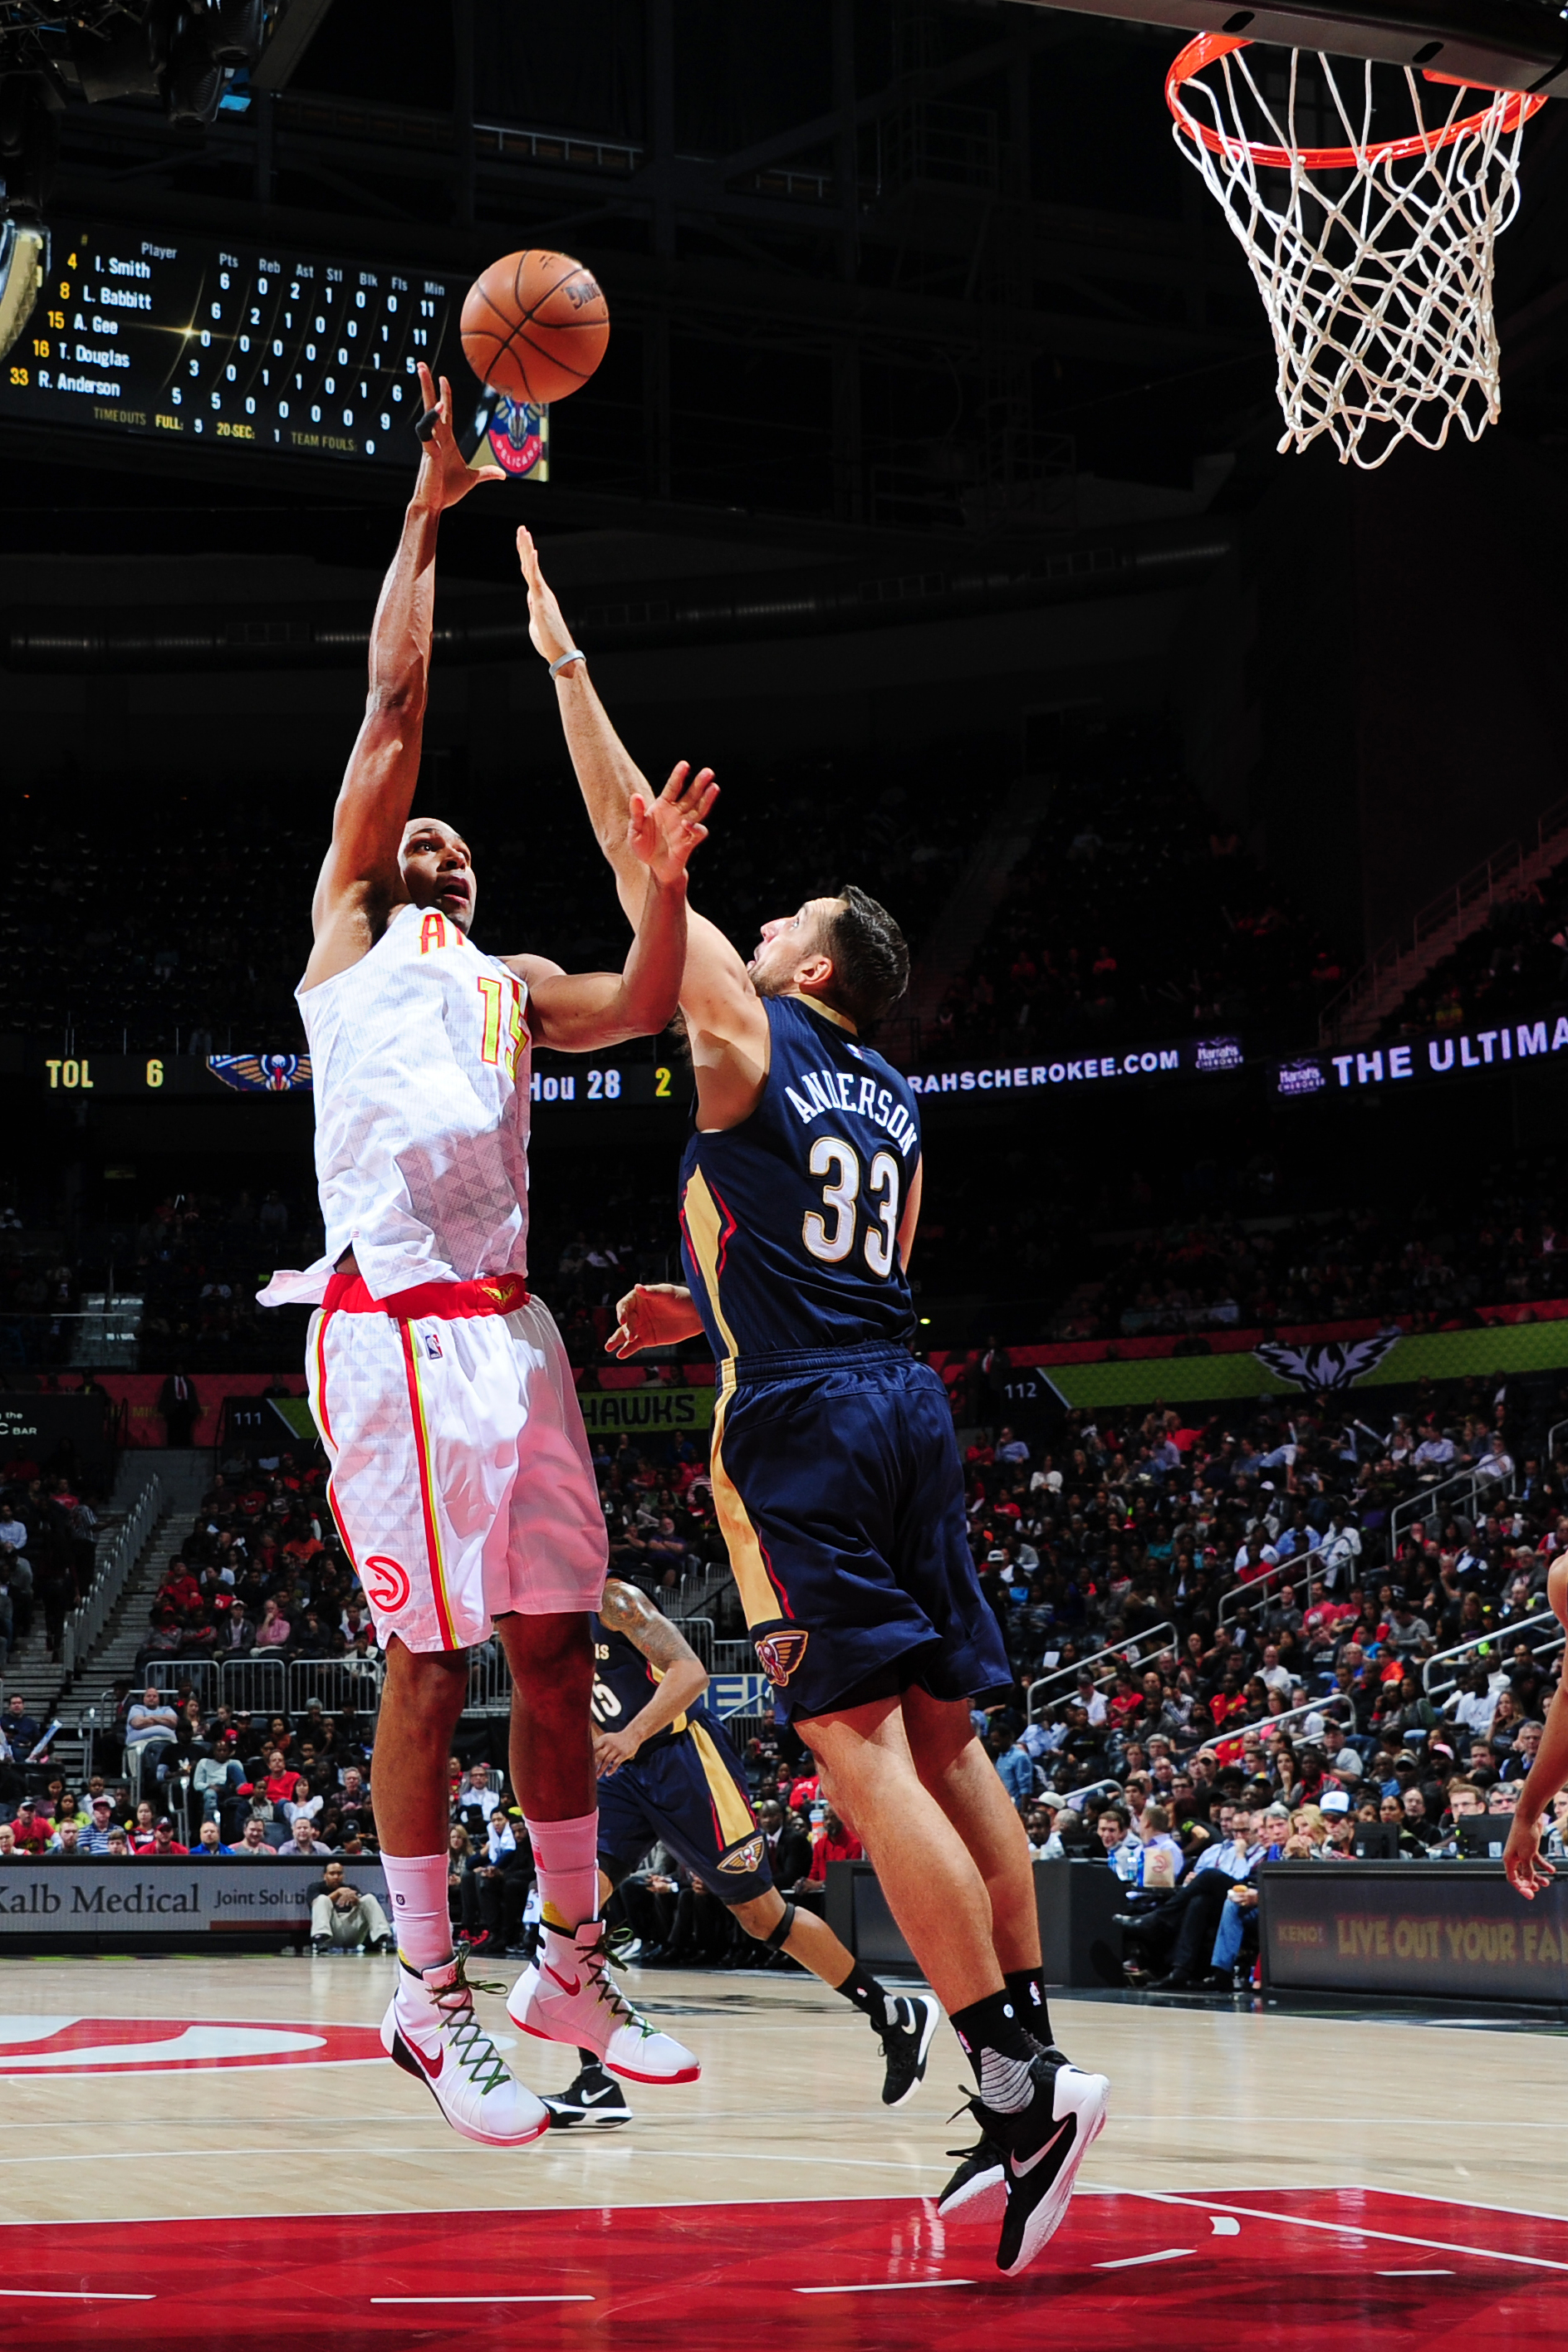 ATLANTA, GA - NOVEMBER 11: Al Horford #15 of the Atlanta Hawks shoots against Ryan Anderson #33 of the New Orleans Pelicans during the game on November 11, 2015 at Philips Arena in Atlanta, Georgia. (Photo by Scott Cunningham/NBAE via Getty Images)